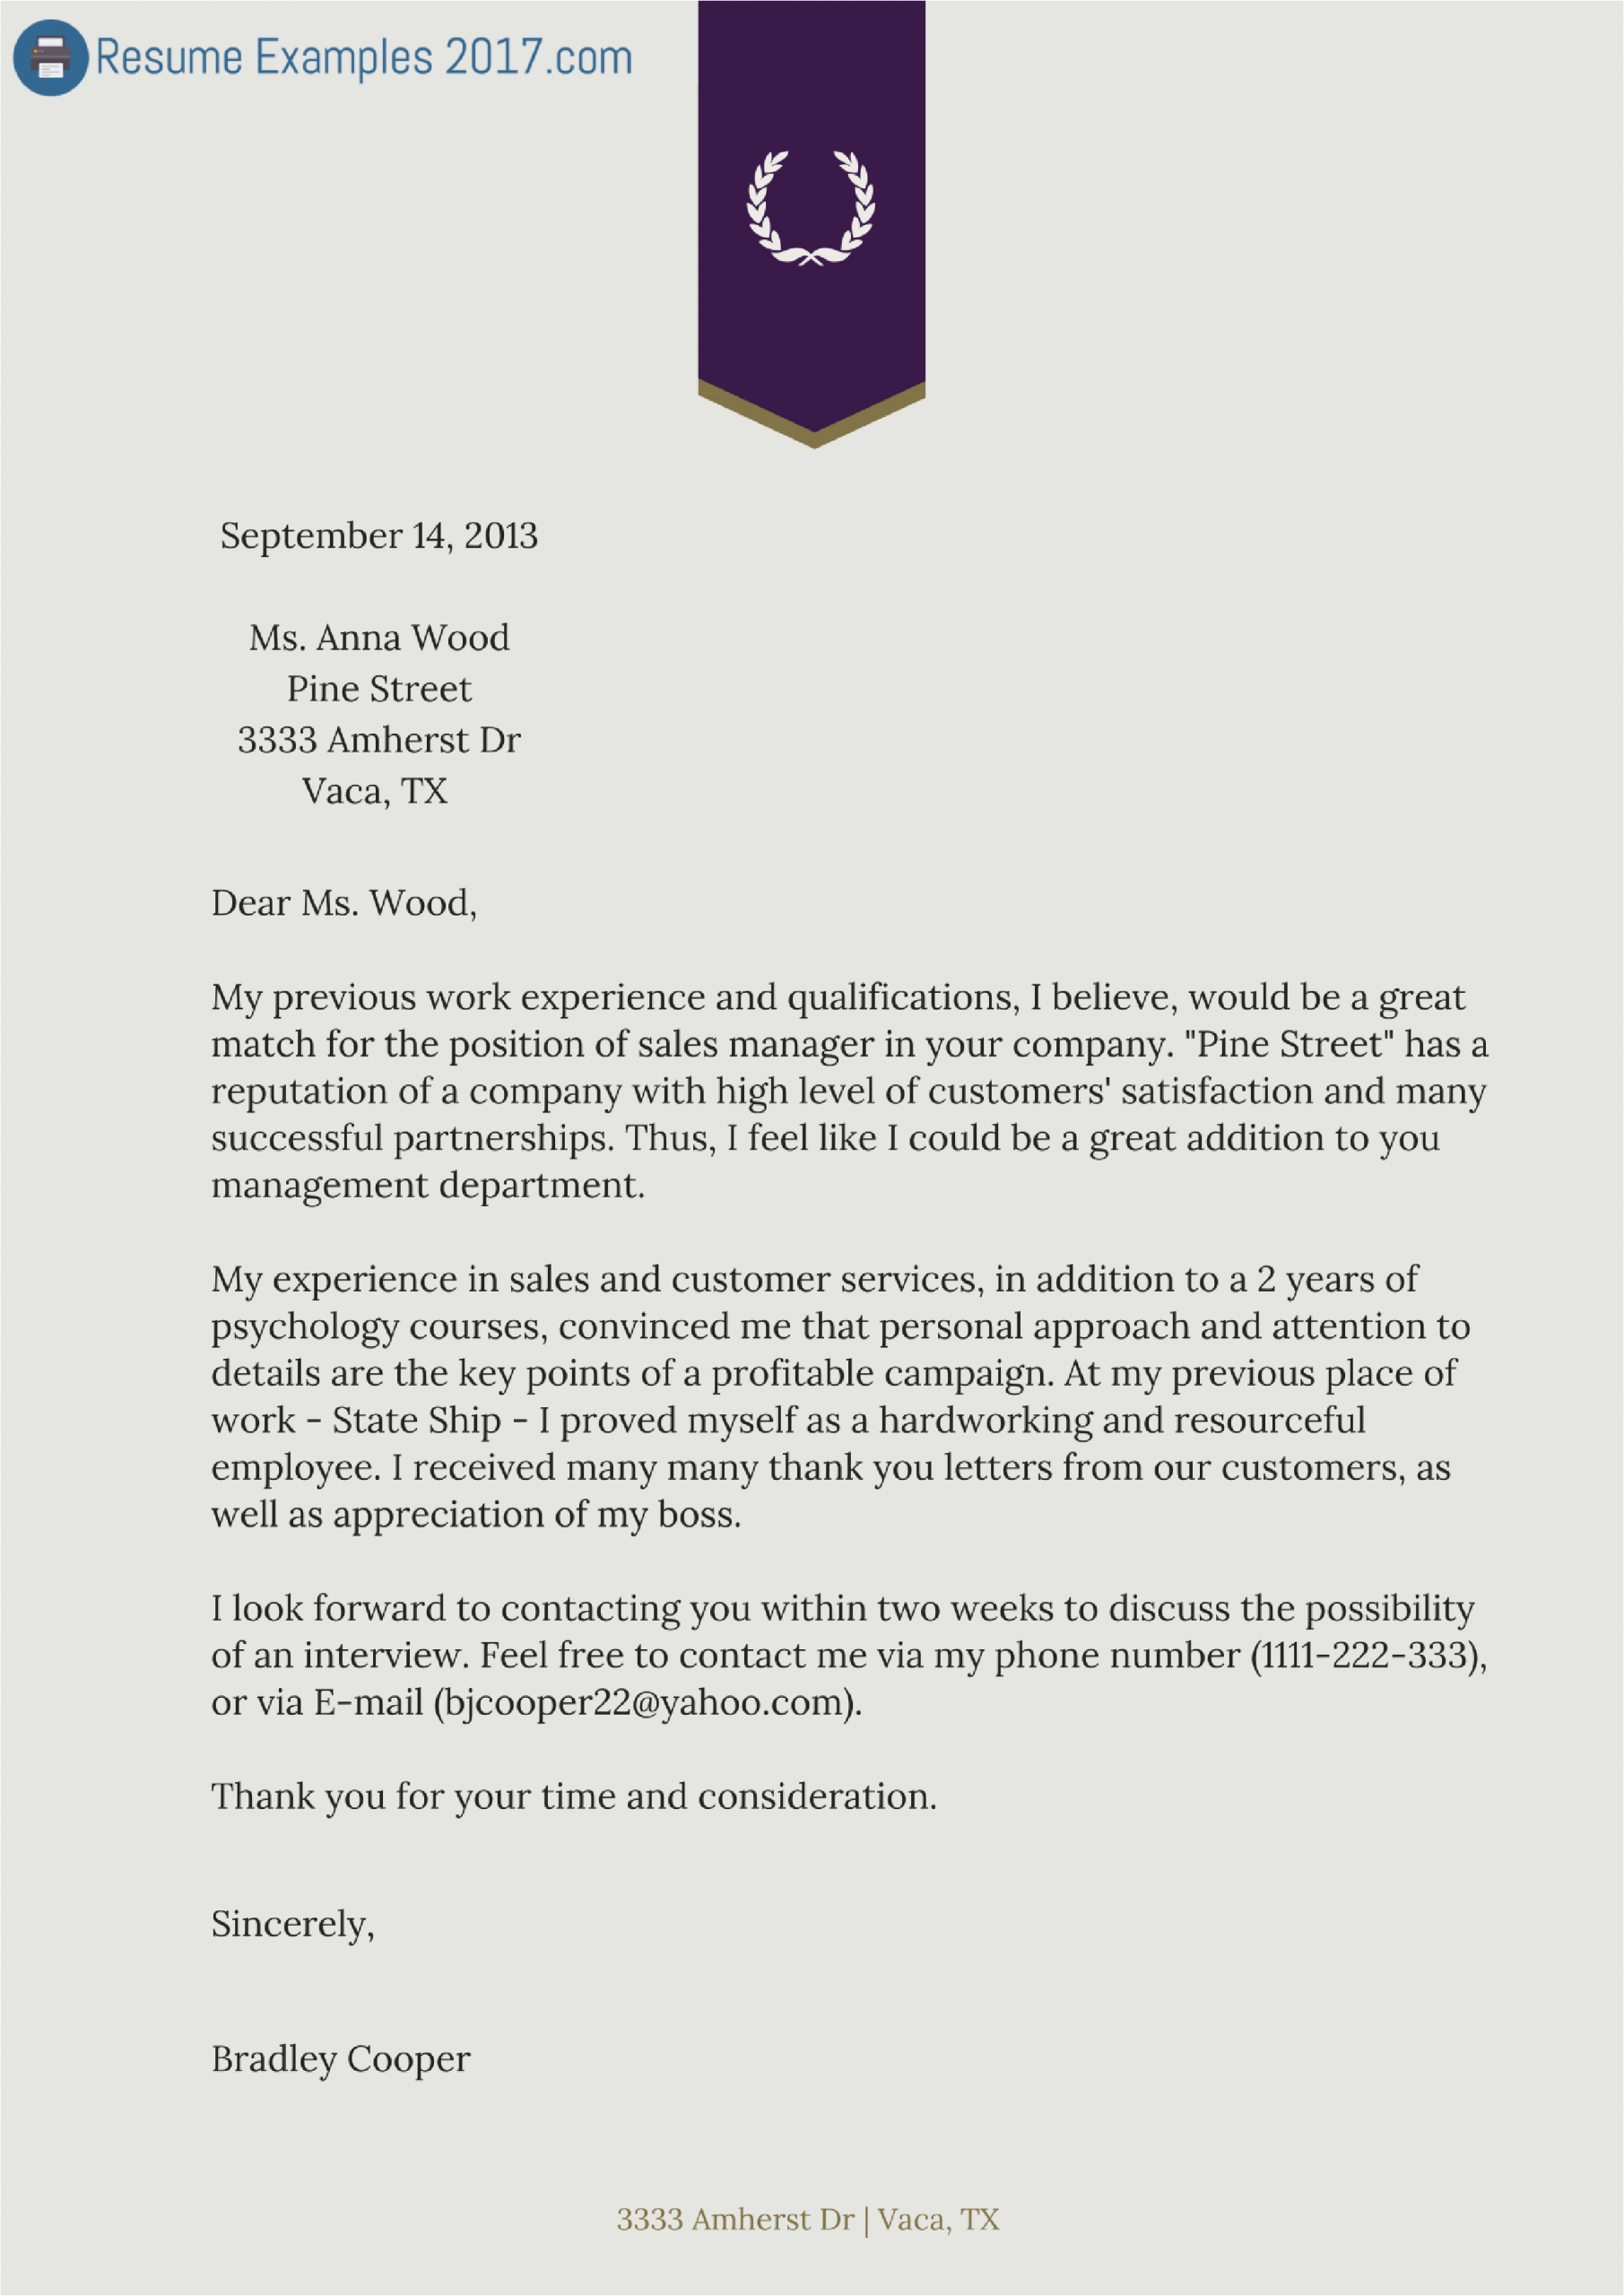 Best Resume and Cover Letter Samples Finest Cover Letter Resume Examples